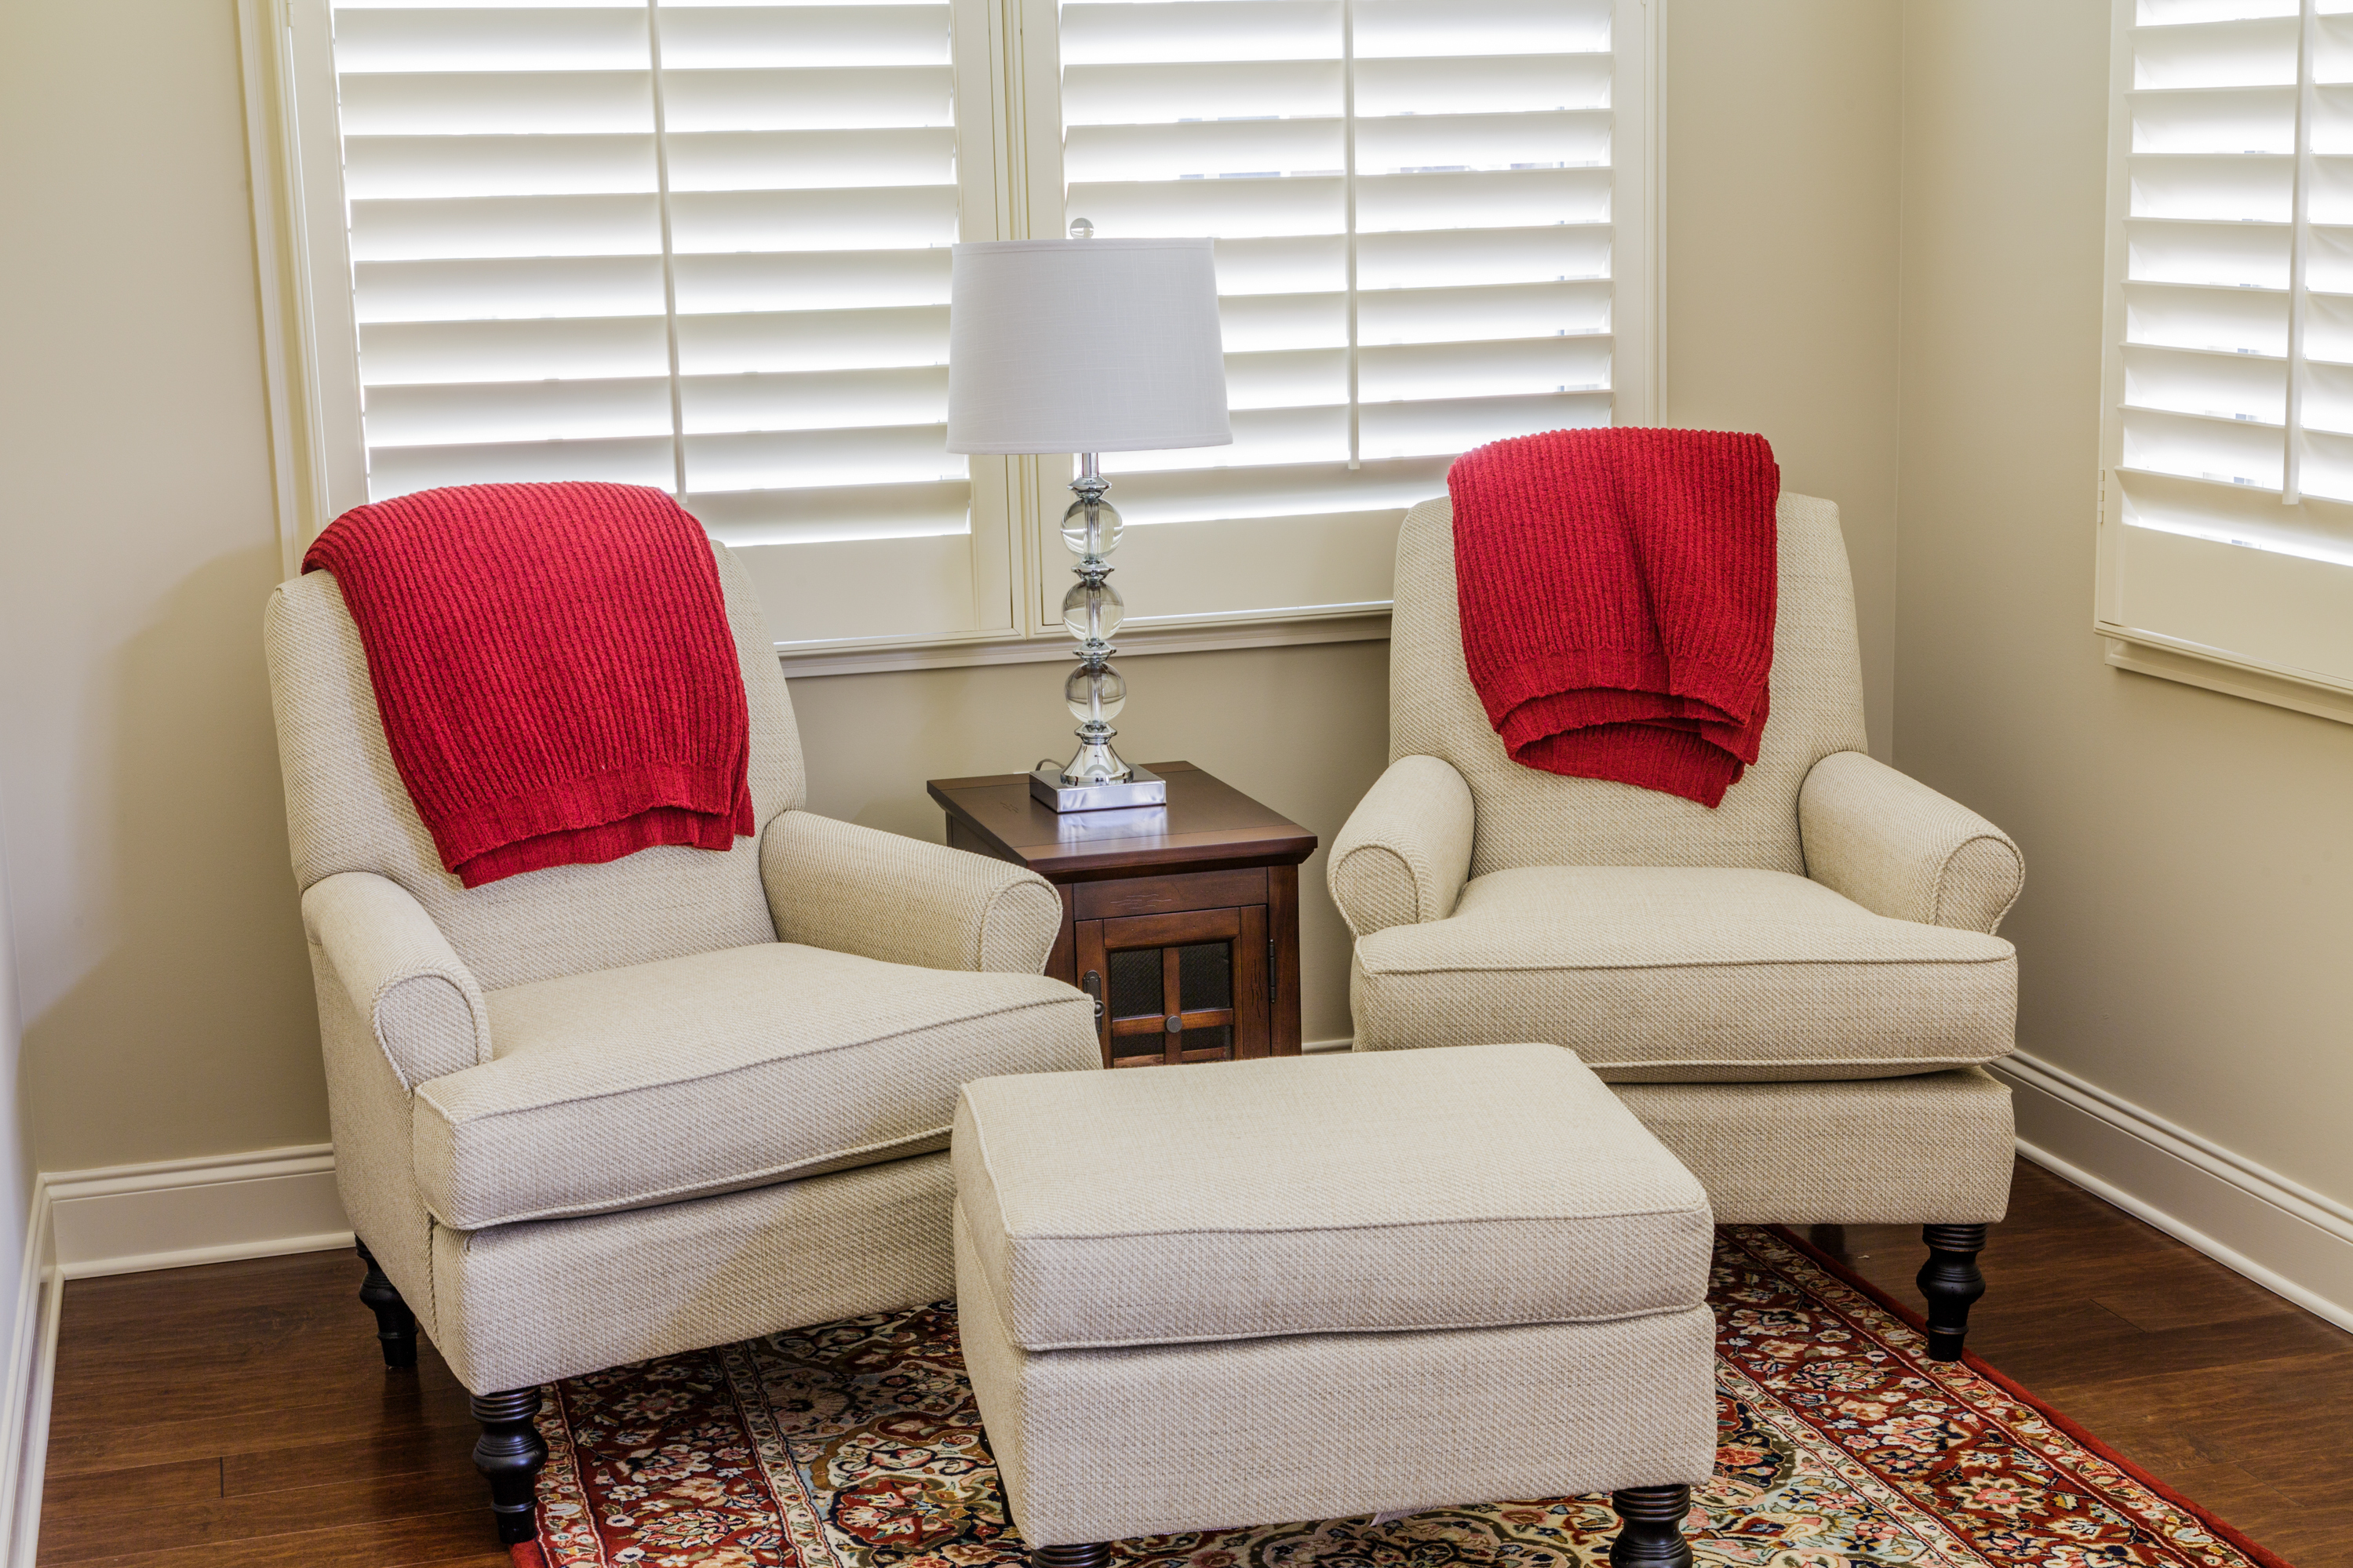 White Chairs with Red Throws in Sun Room